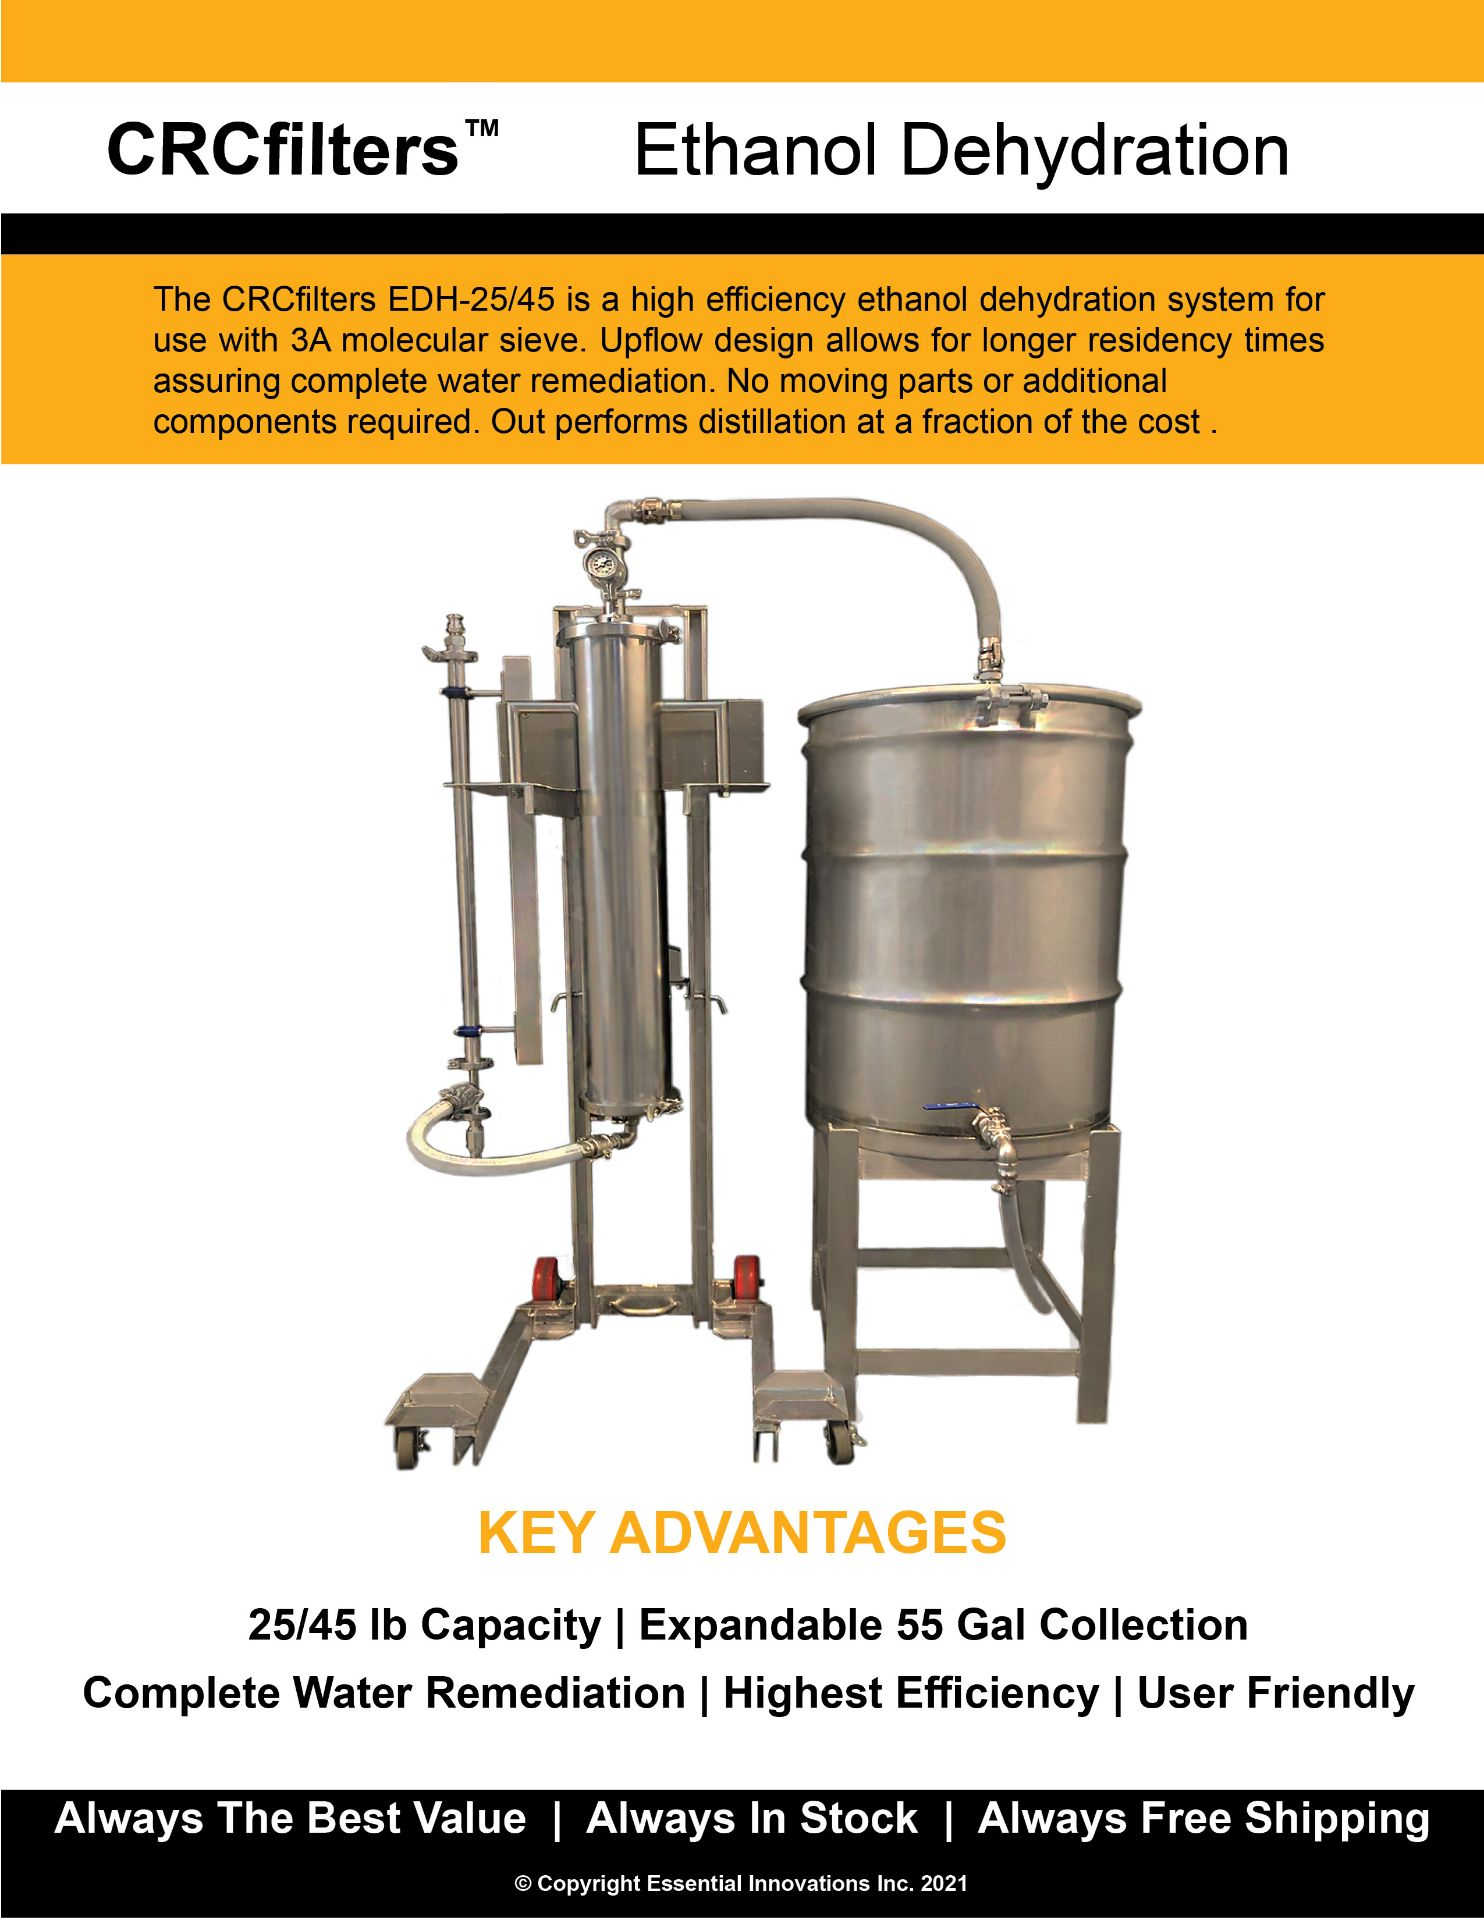 Used/Refurbished-CRCfilters Ethanol Dehydration System EDH-25. 25lb capacity 55 gal collection drum. - Image 6 of 7